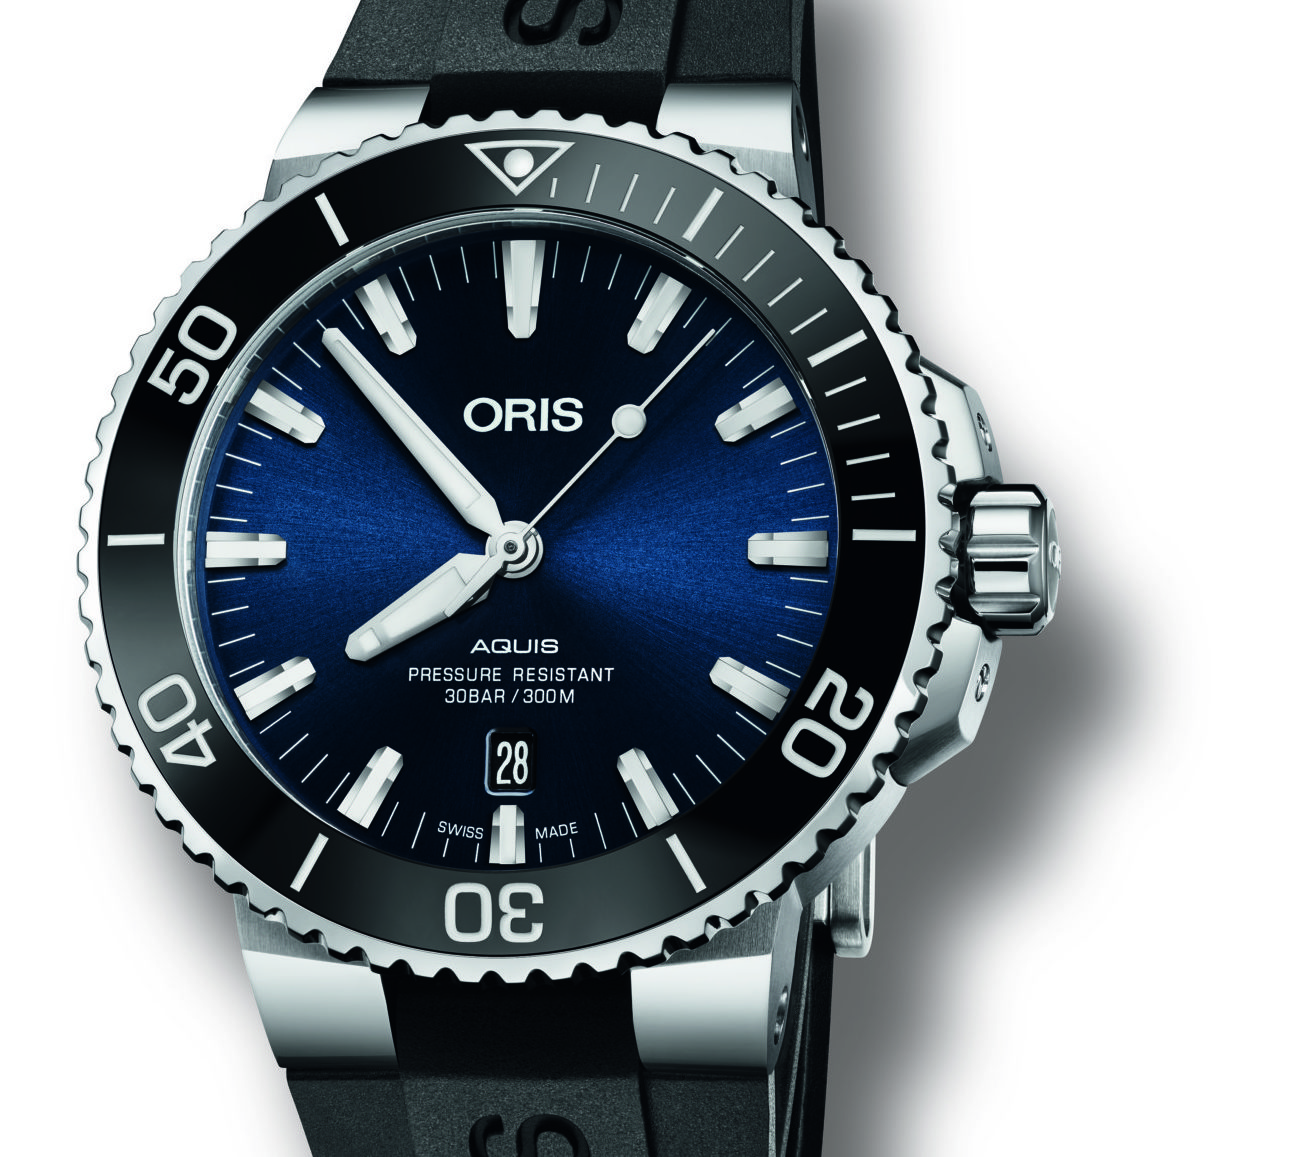 The 2017 Oris Aquis Date delivers practical enhancements with its uni-directional bezel now easier to grip thanks to a small gap introduced between the case and the body, allowing greater purchase.